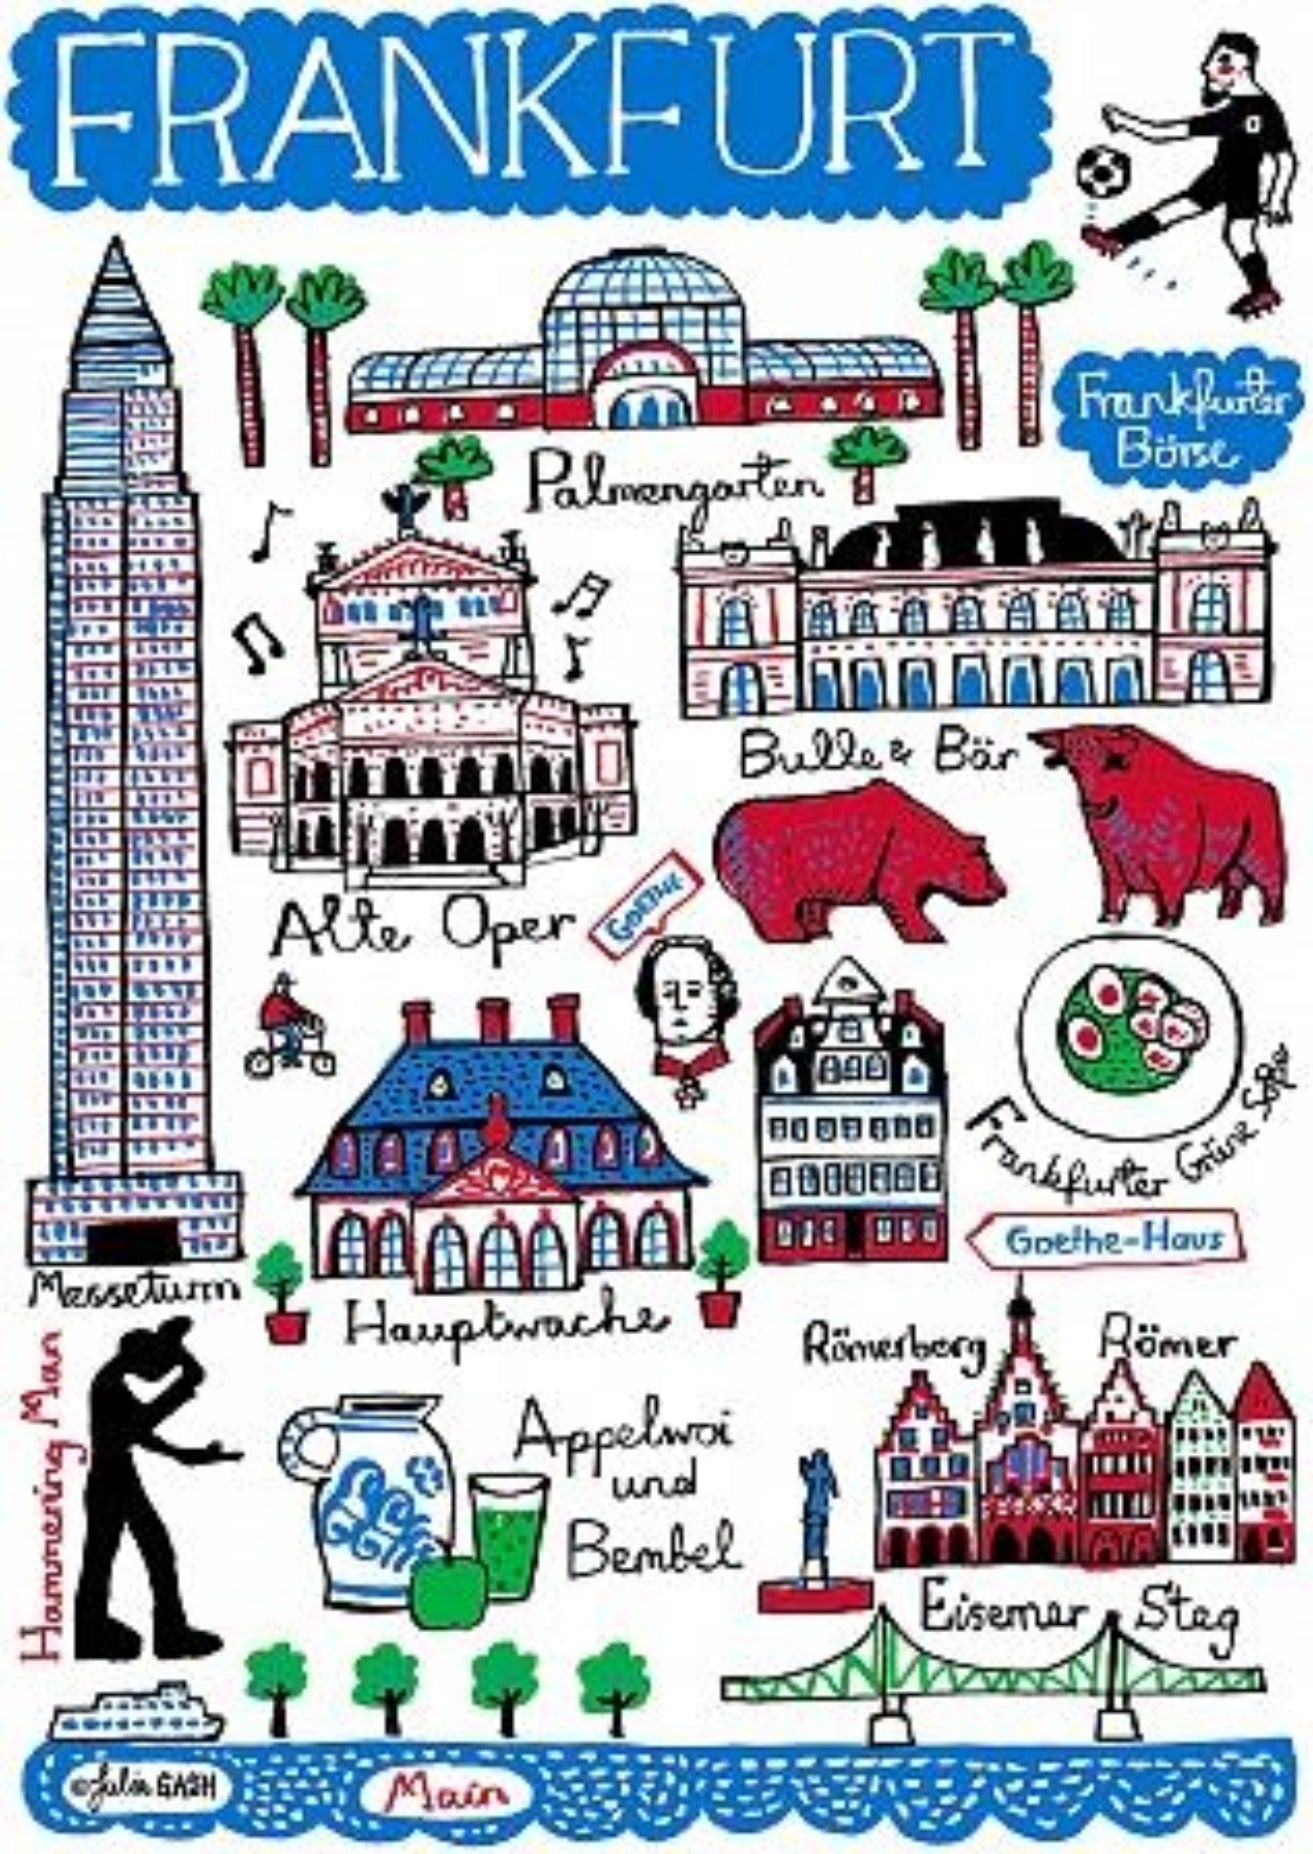 Frankfurt Art Print by British Travel Artist Julia Gash - Julia Gash